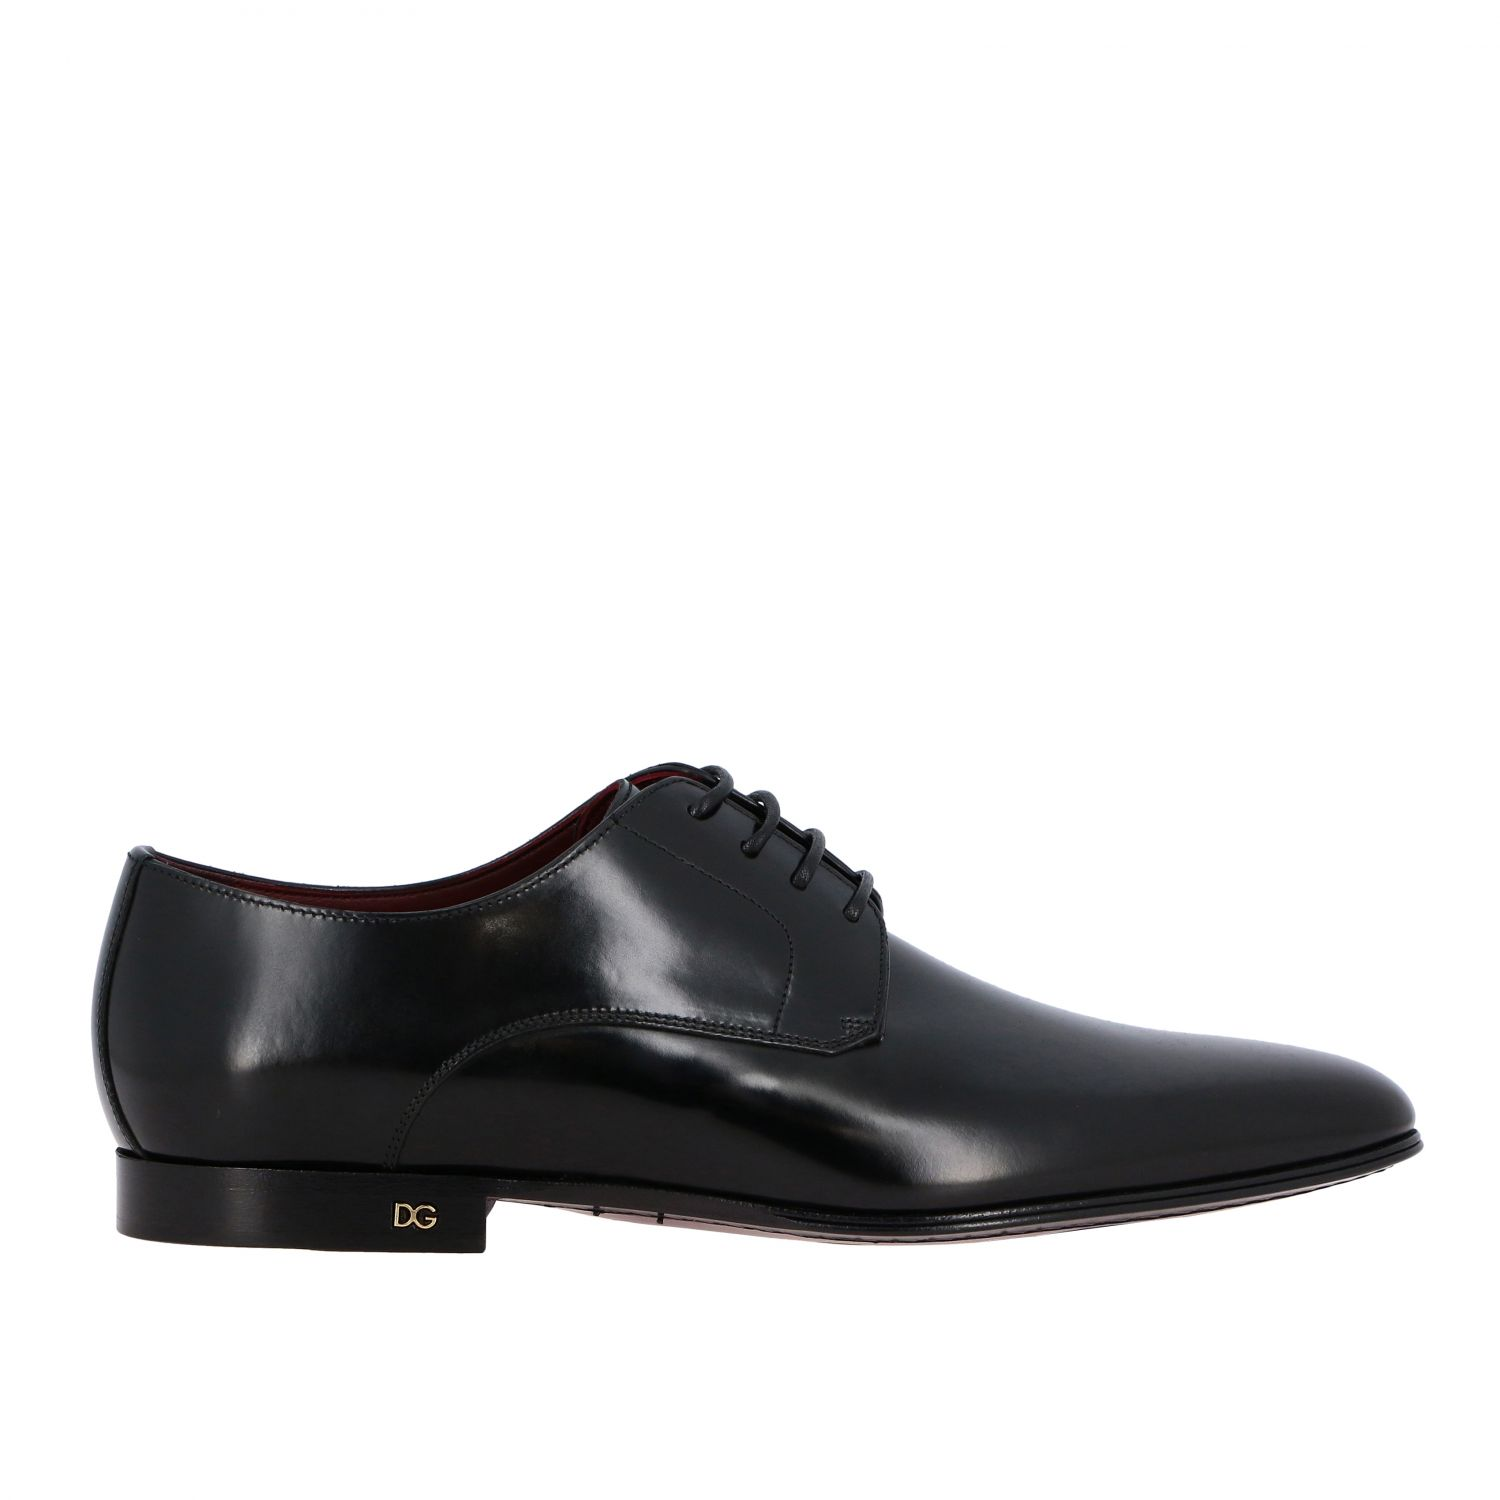 Brogue shoes Dolce & Gabbana: Dolce & Gabbana classic lace-up shoe in shiny leather black 1